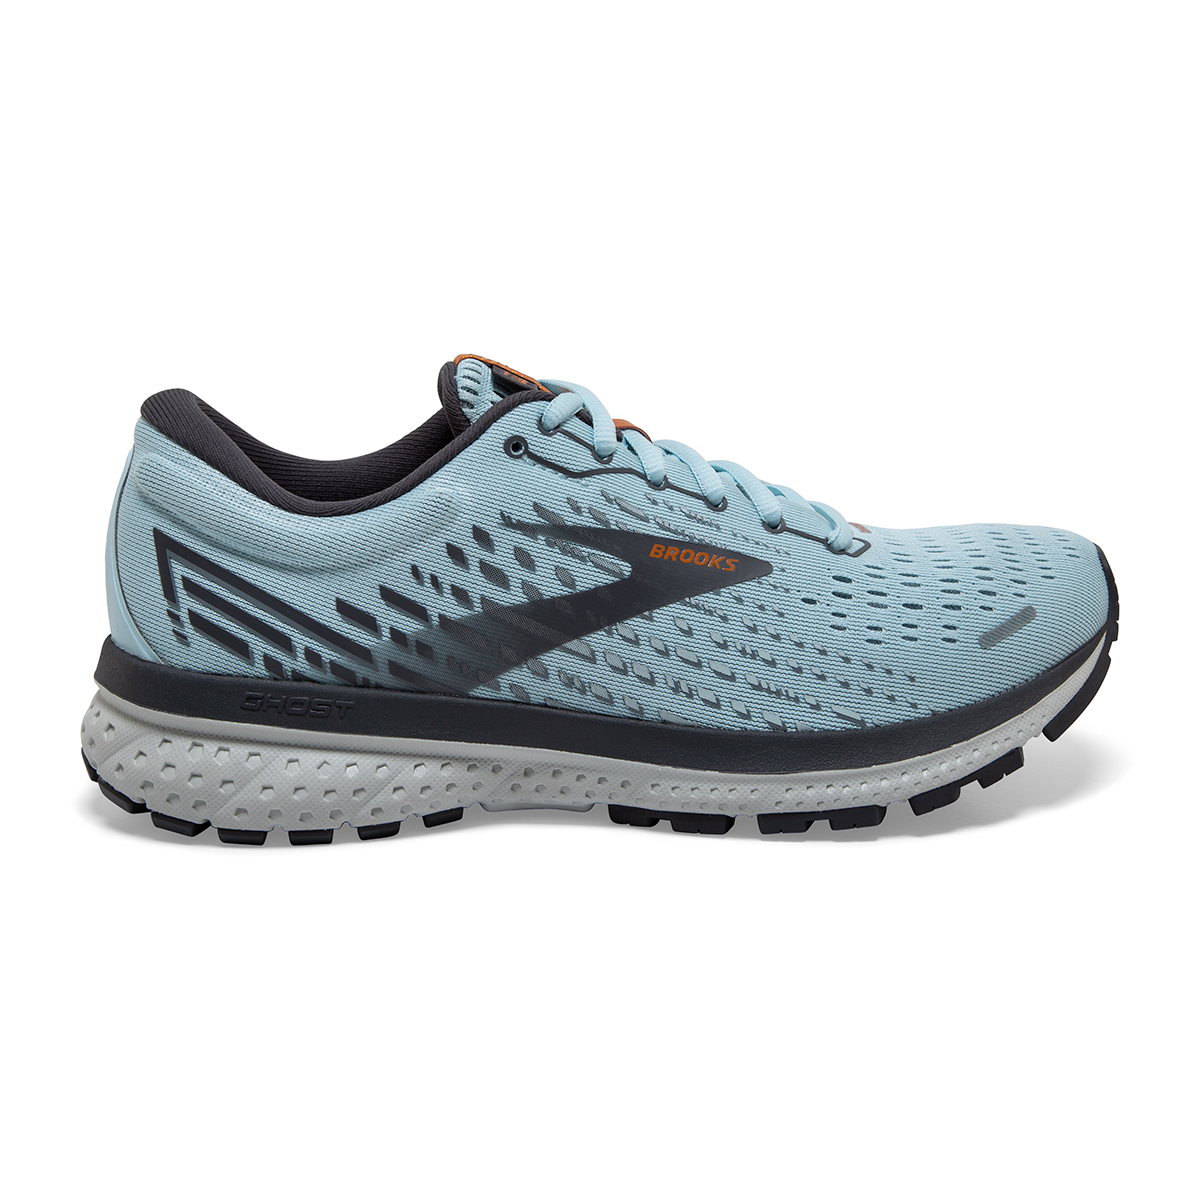 Women's Brooks Ghost 13 Running Shoe - Color: Light Blue/Black - Size: 5 - Width: Regular, Light Blue/Black, large, image 1